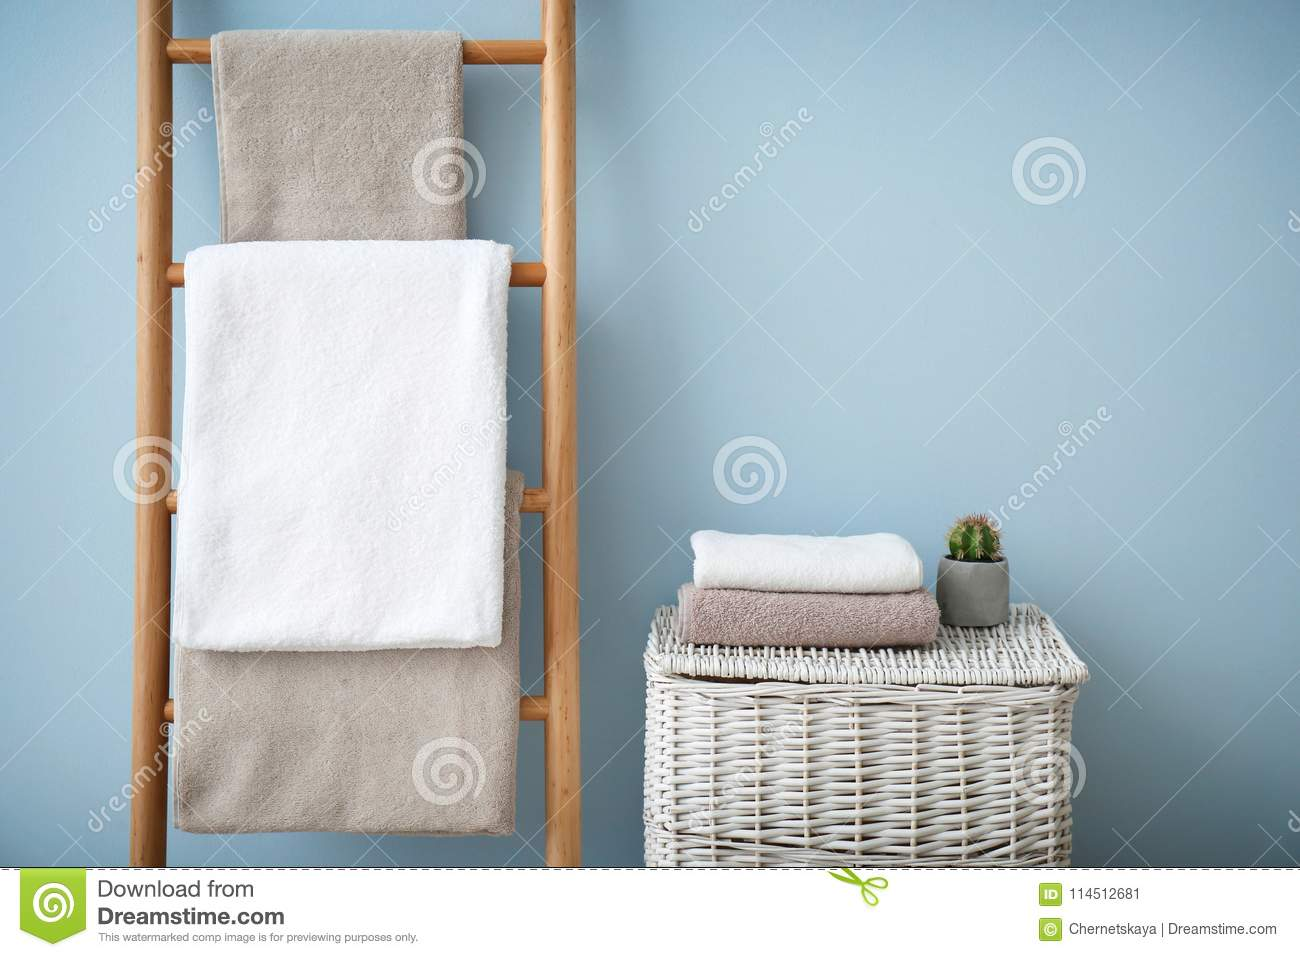 Clean Towels On Holder And Wicker Basket Stock Image - Image of tidy ...